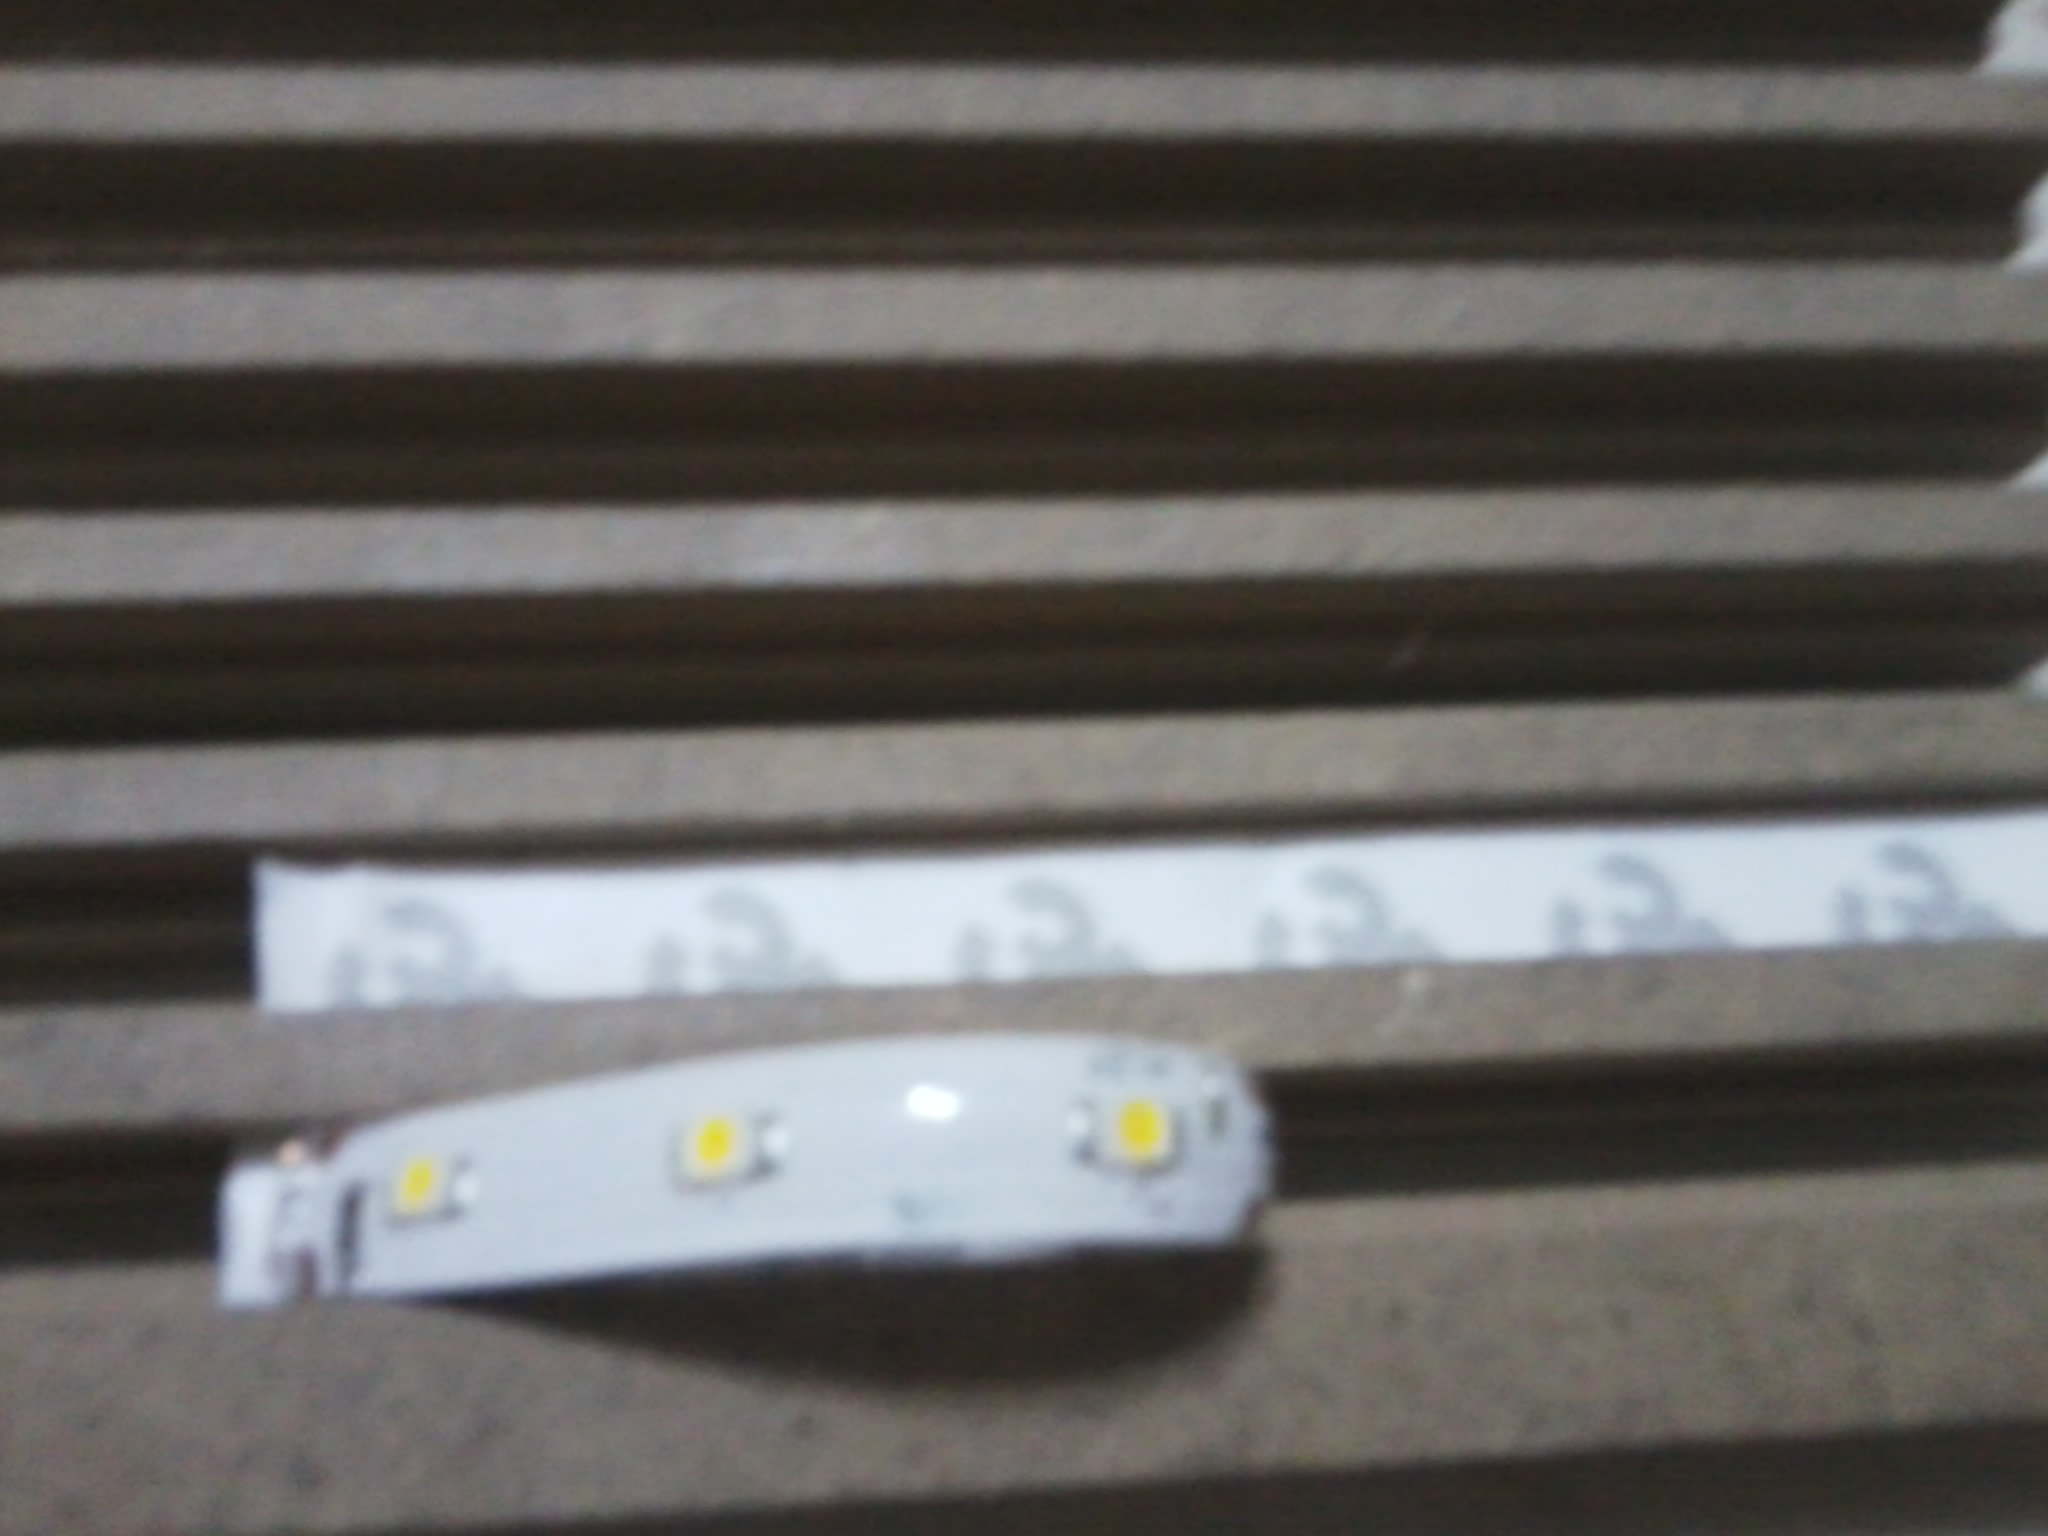 Picture of Attaching LED Strips and Plexiglass Plates to the Wooden Piece